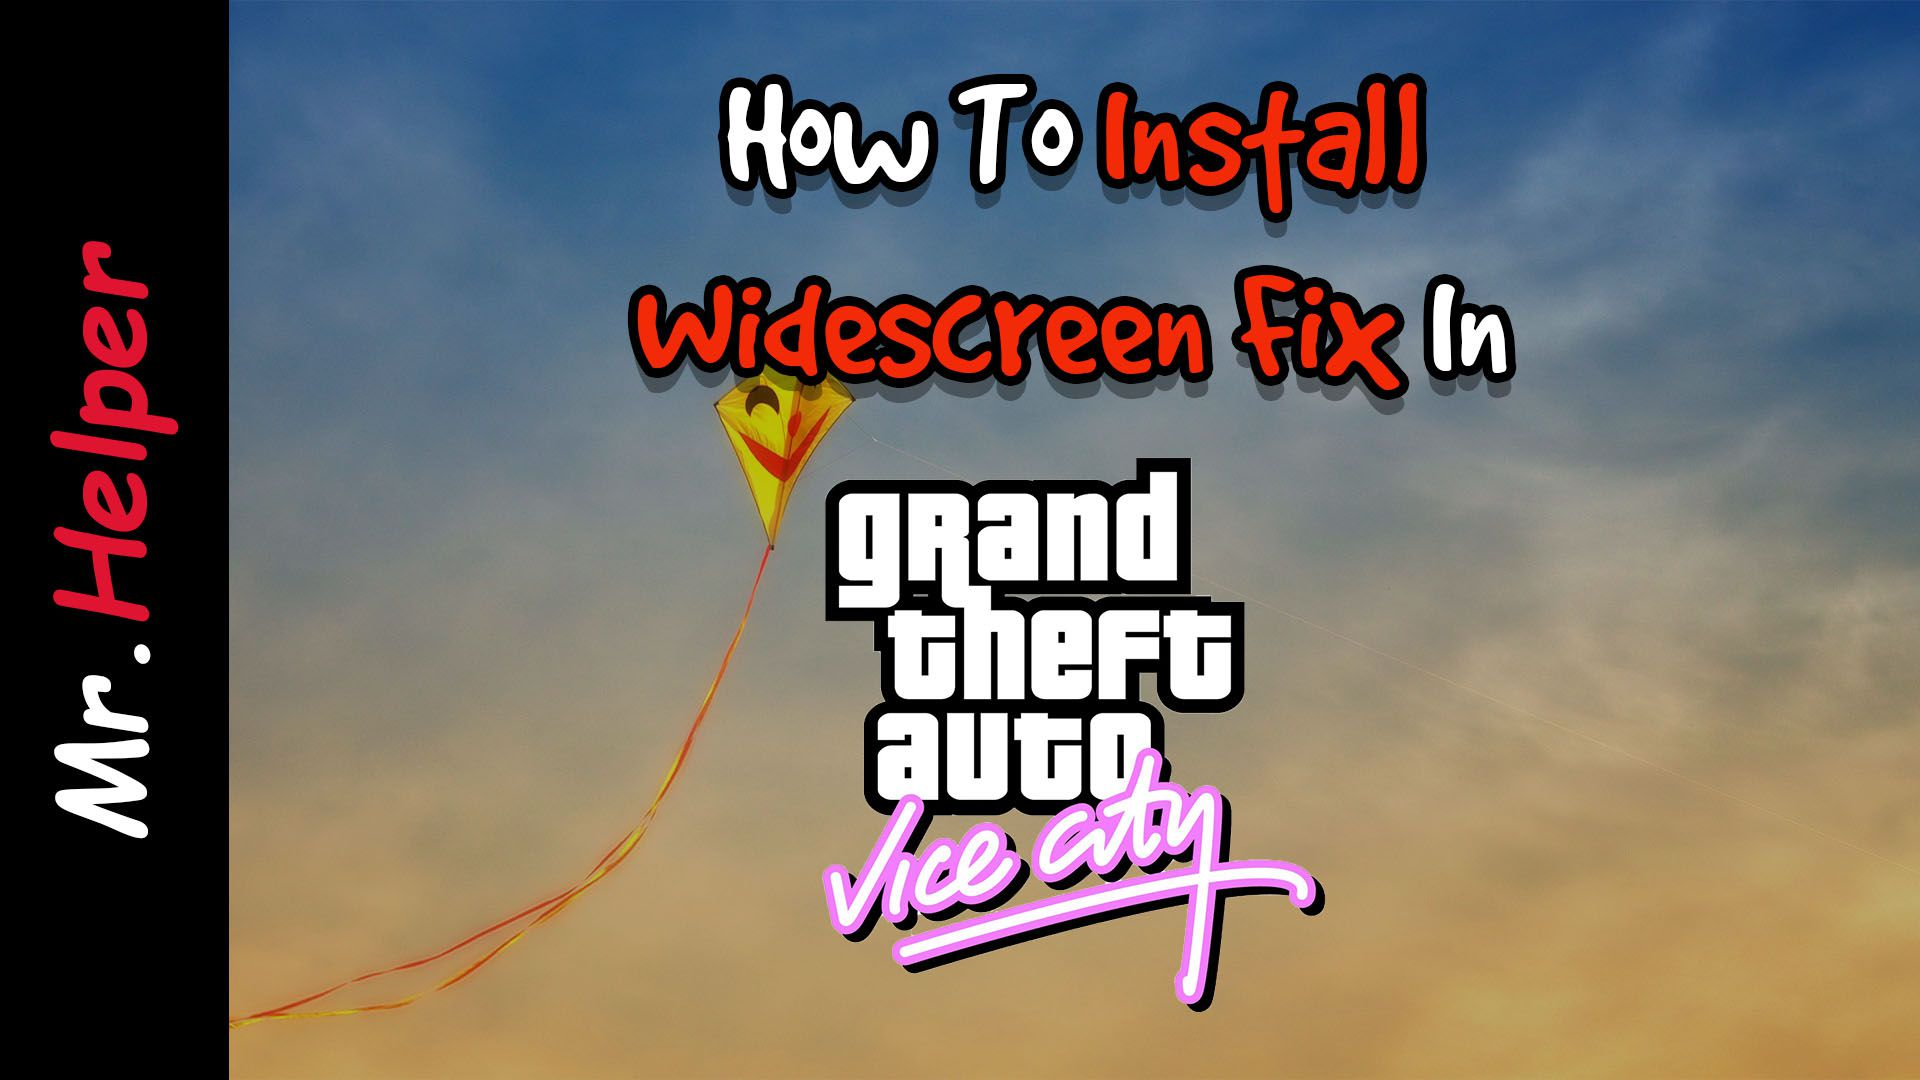 How To Install Widescreen Fix In Grand Theft Auto Vice City